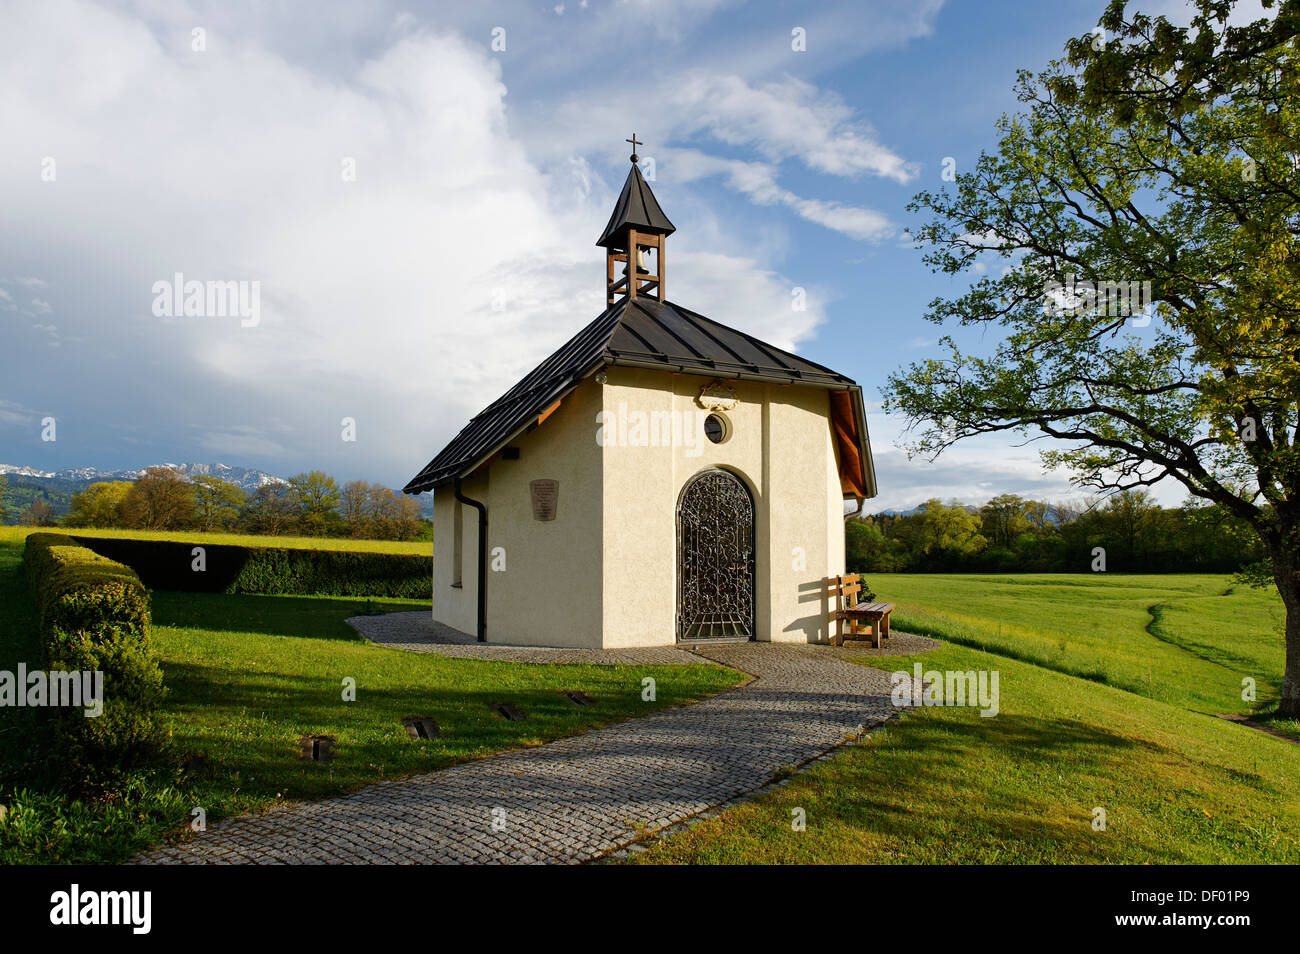 Barbara Chapel, Hohenbirken, Bad Heilbrunn, Loisachtal valley, Upper Bavaria, Bavaria - Stock Image